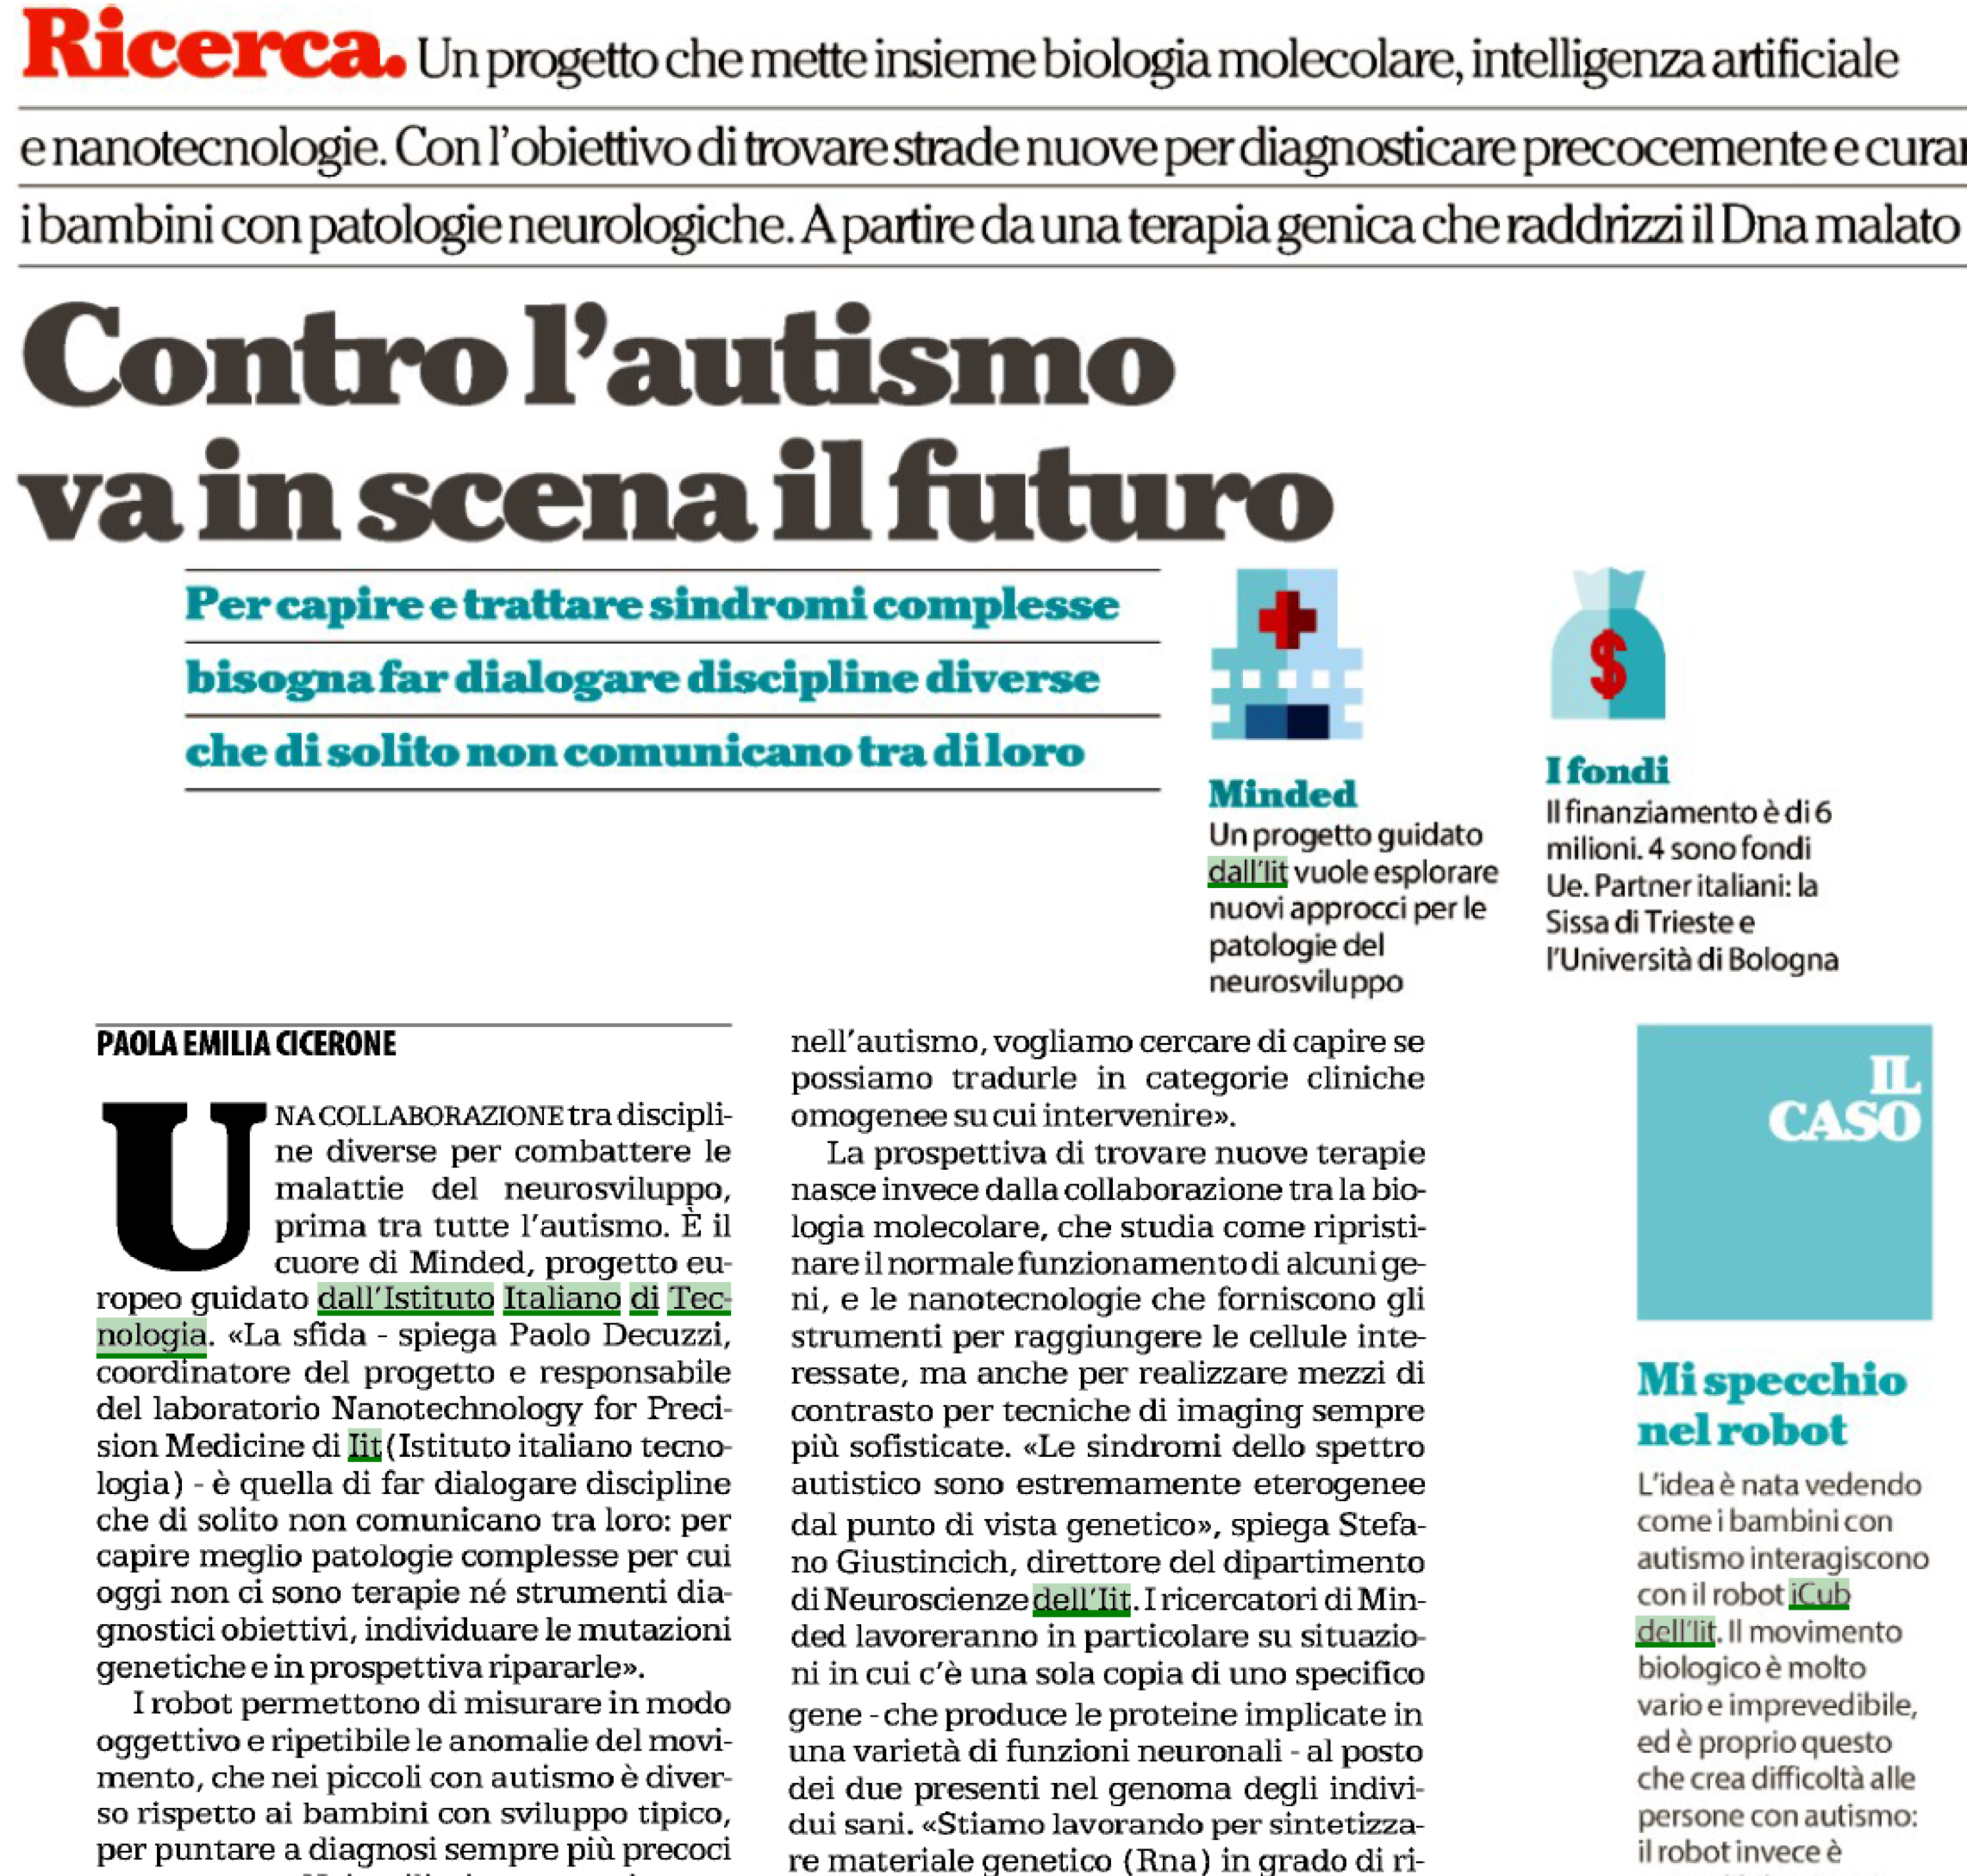 press-review-minded-repubblica